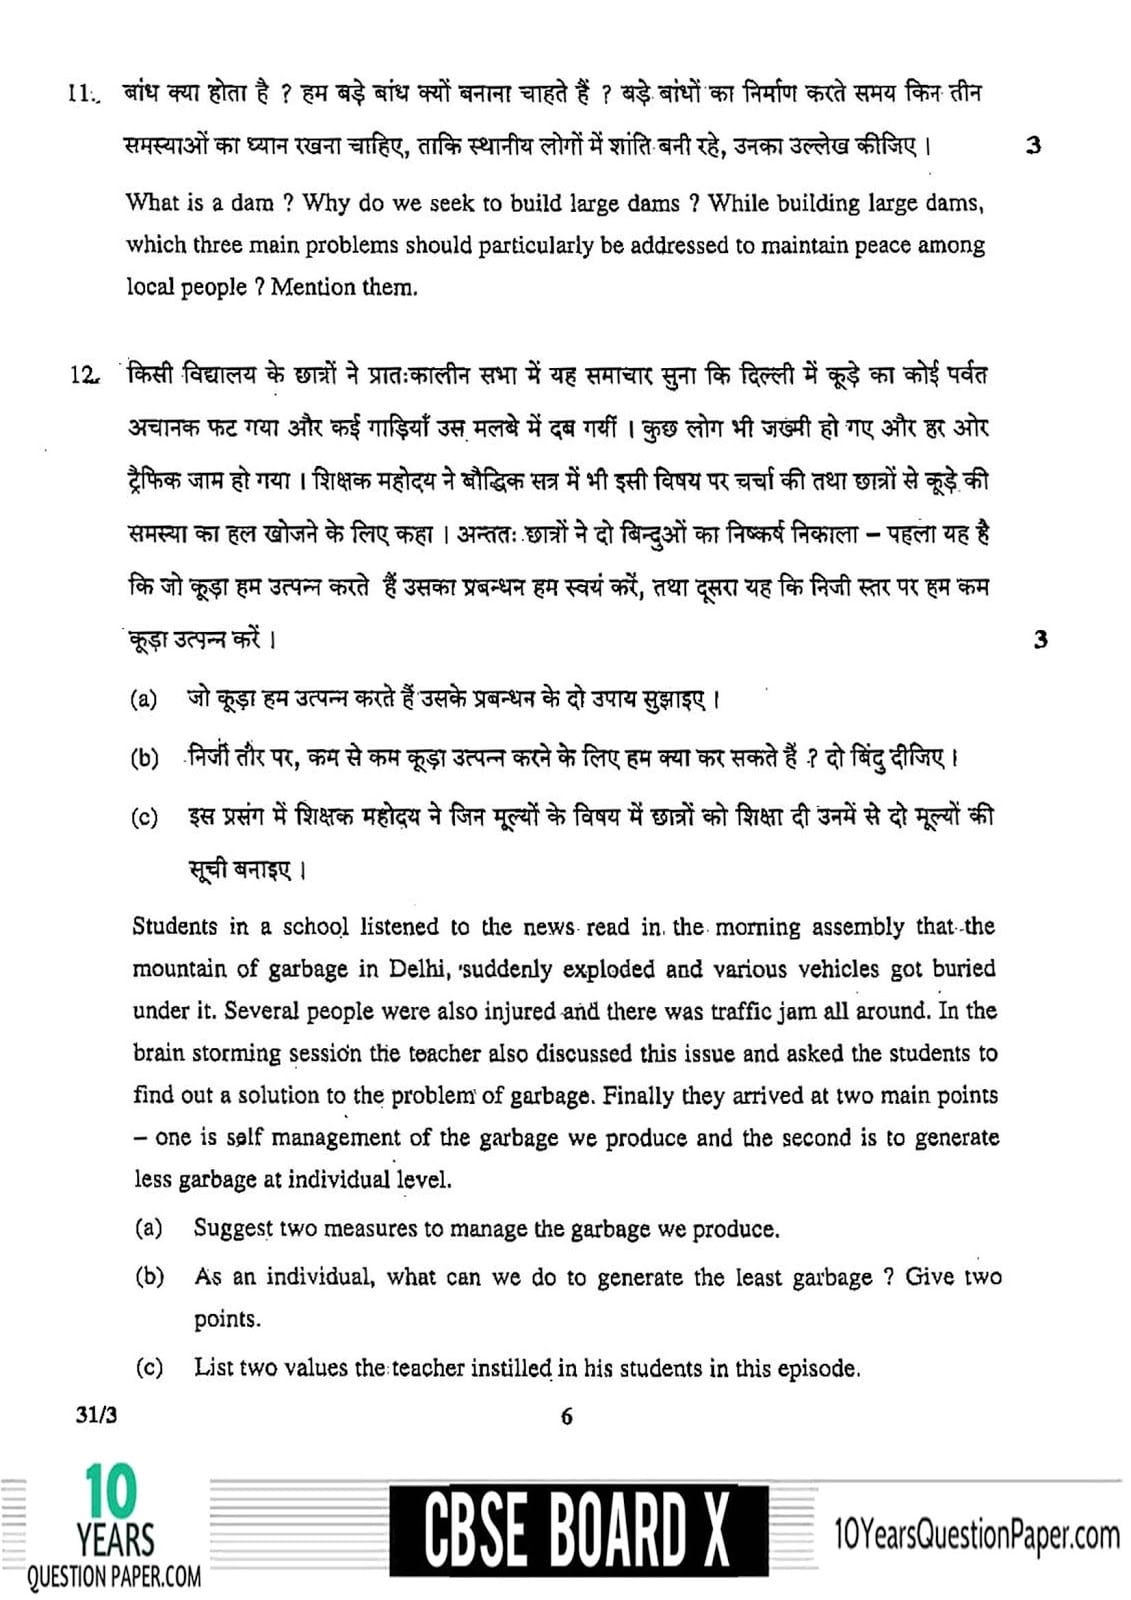 CBSE Class 10 Science 2018 Question Paper